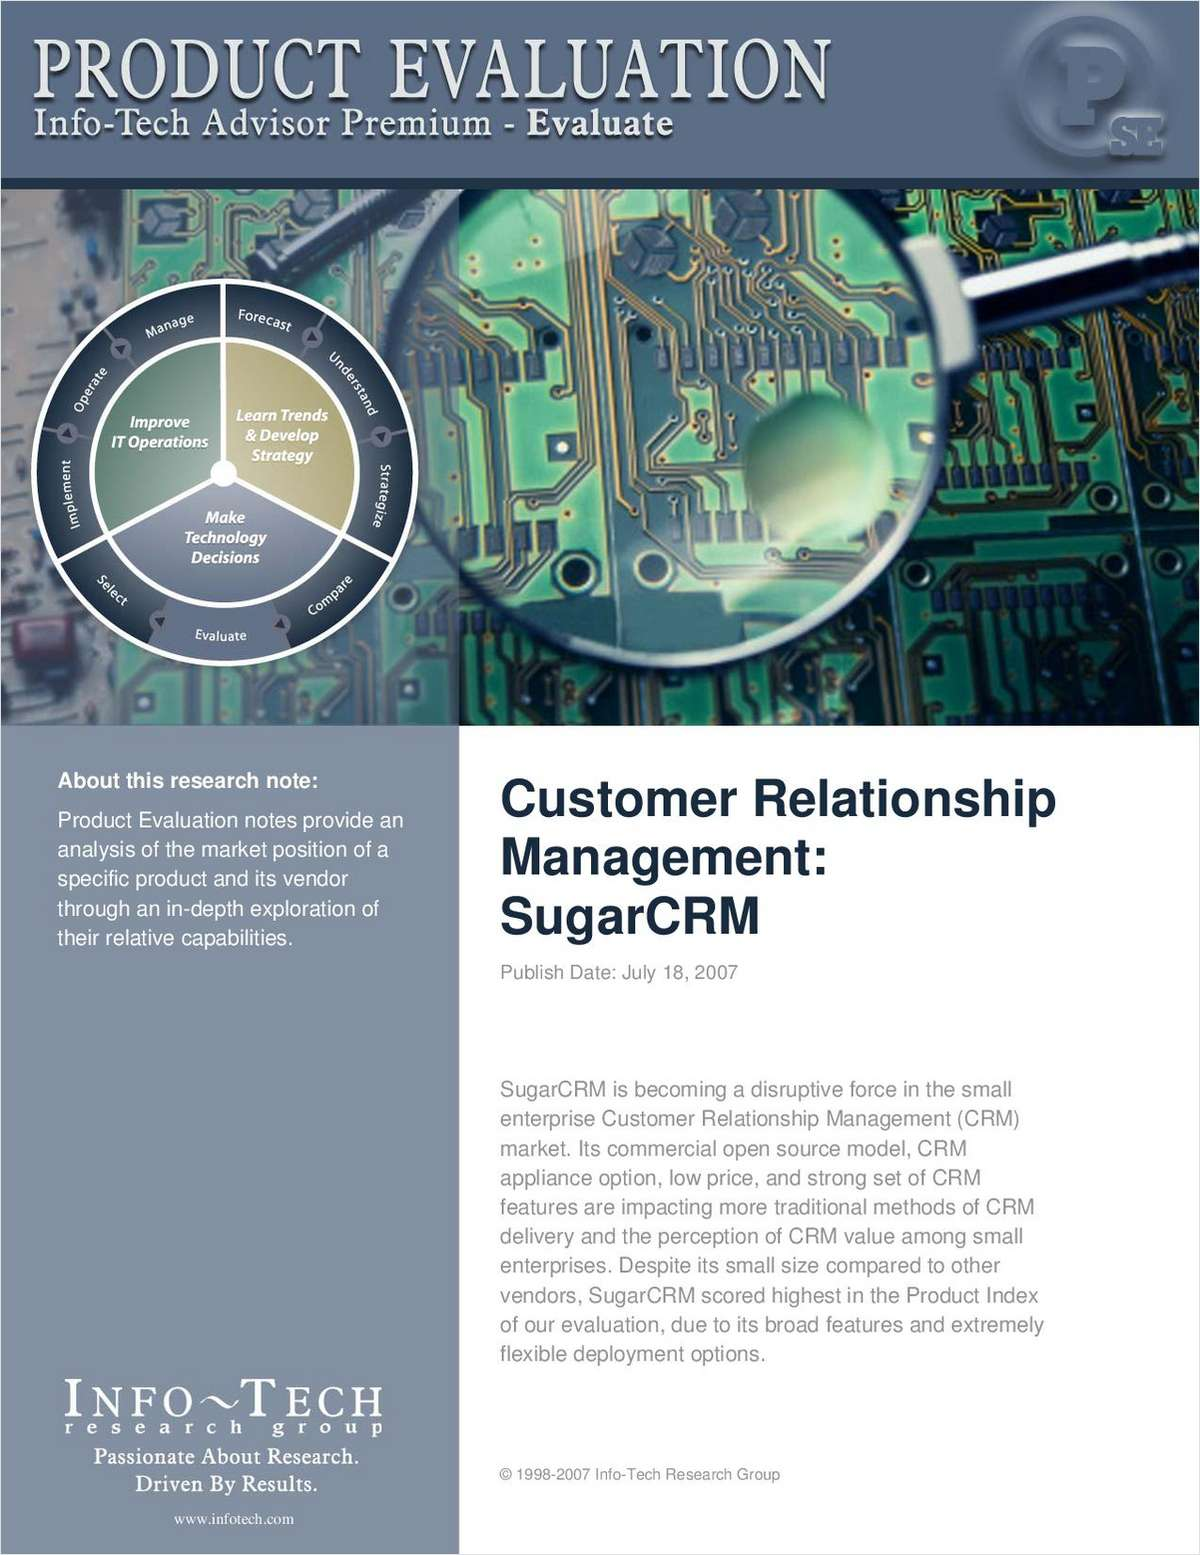 Info-Tech Research Names SugarCRM a CRM Leader